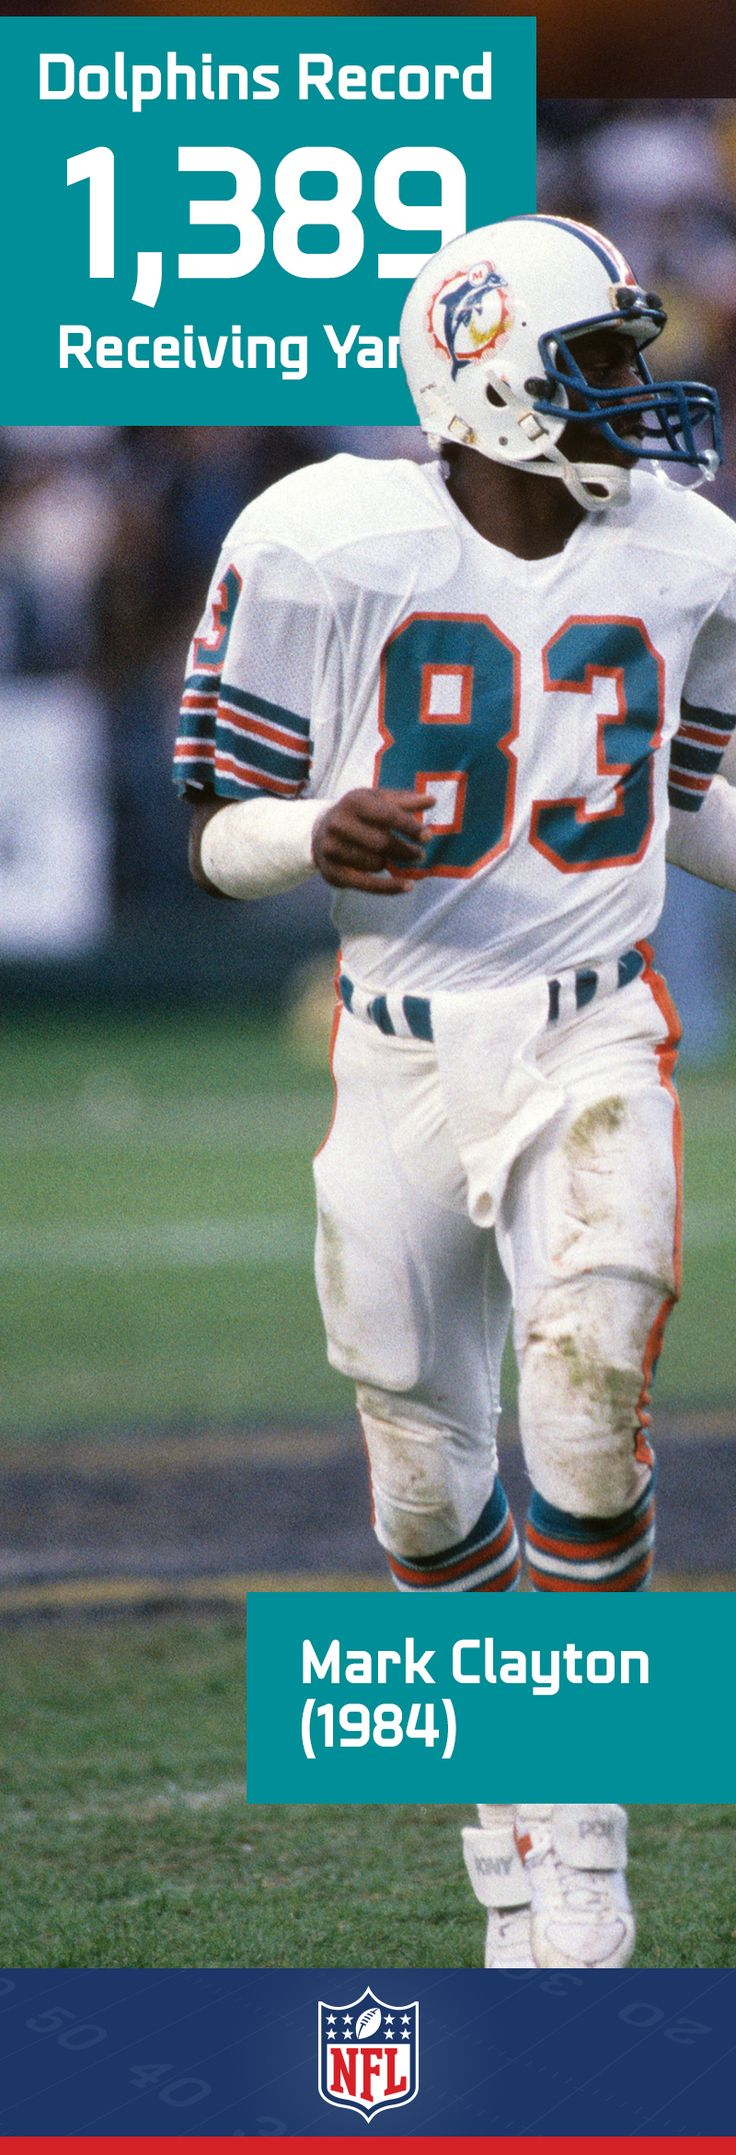 Flashback to 1984 when Dan Marino's favorite WR, Mark Clayton, set the Miami Dolphins receiving yards record. https://www.fanprint.com/licenses/miami-dolphins?ref=5750